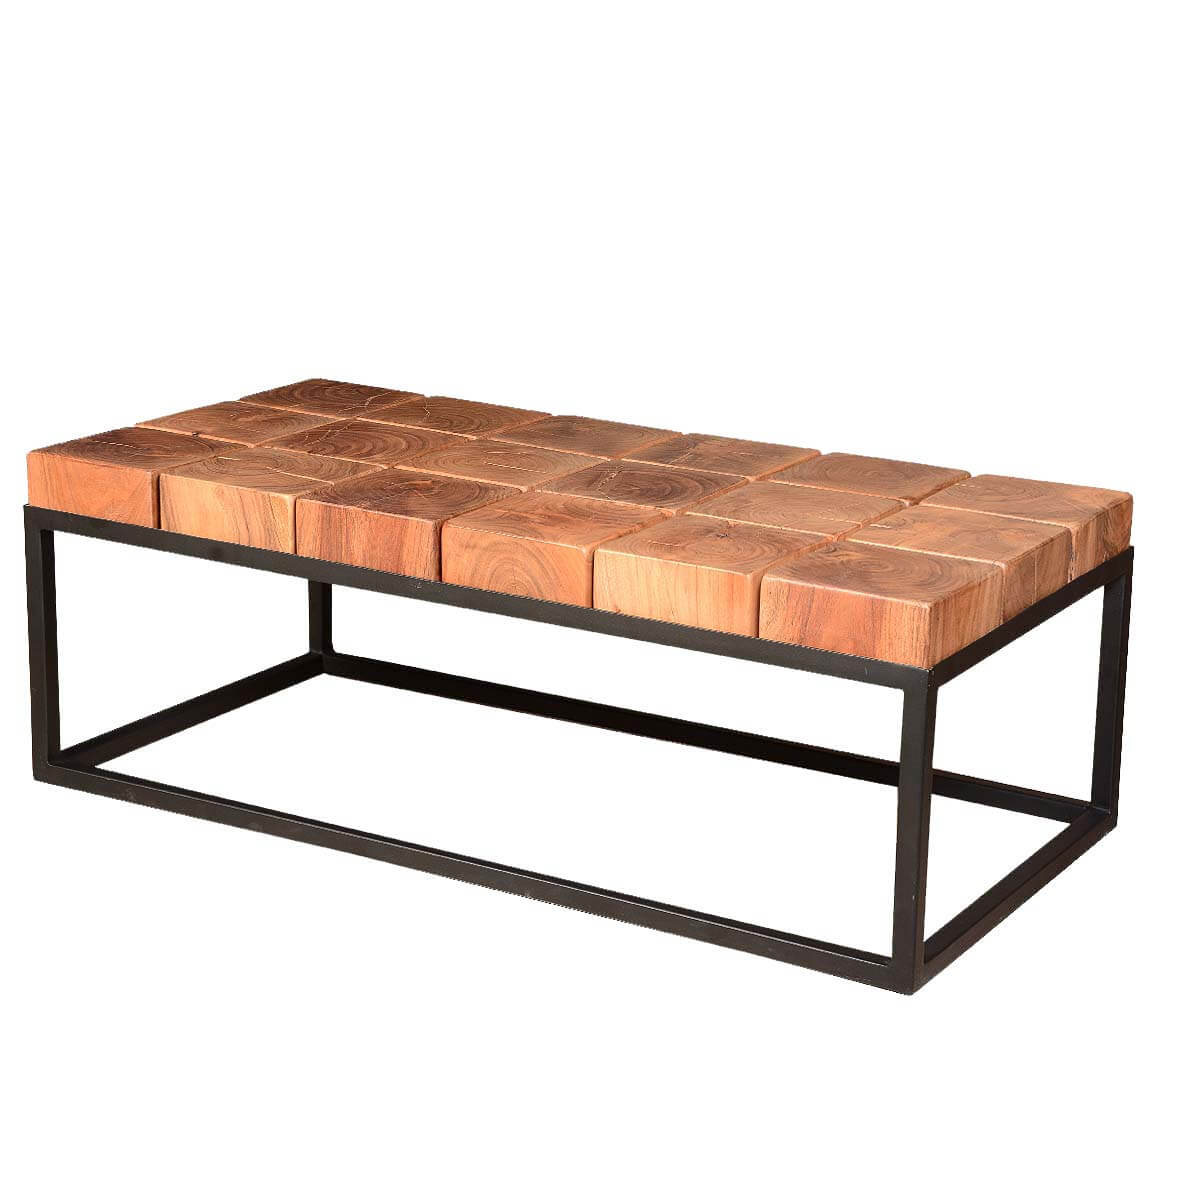 Solid acacia wood block contemporary iron base rustic coffee table Bases for coffee tables